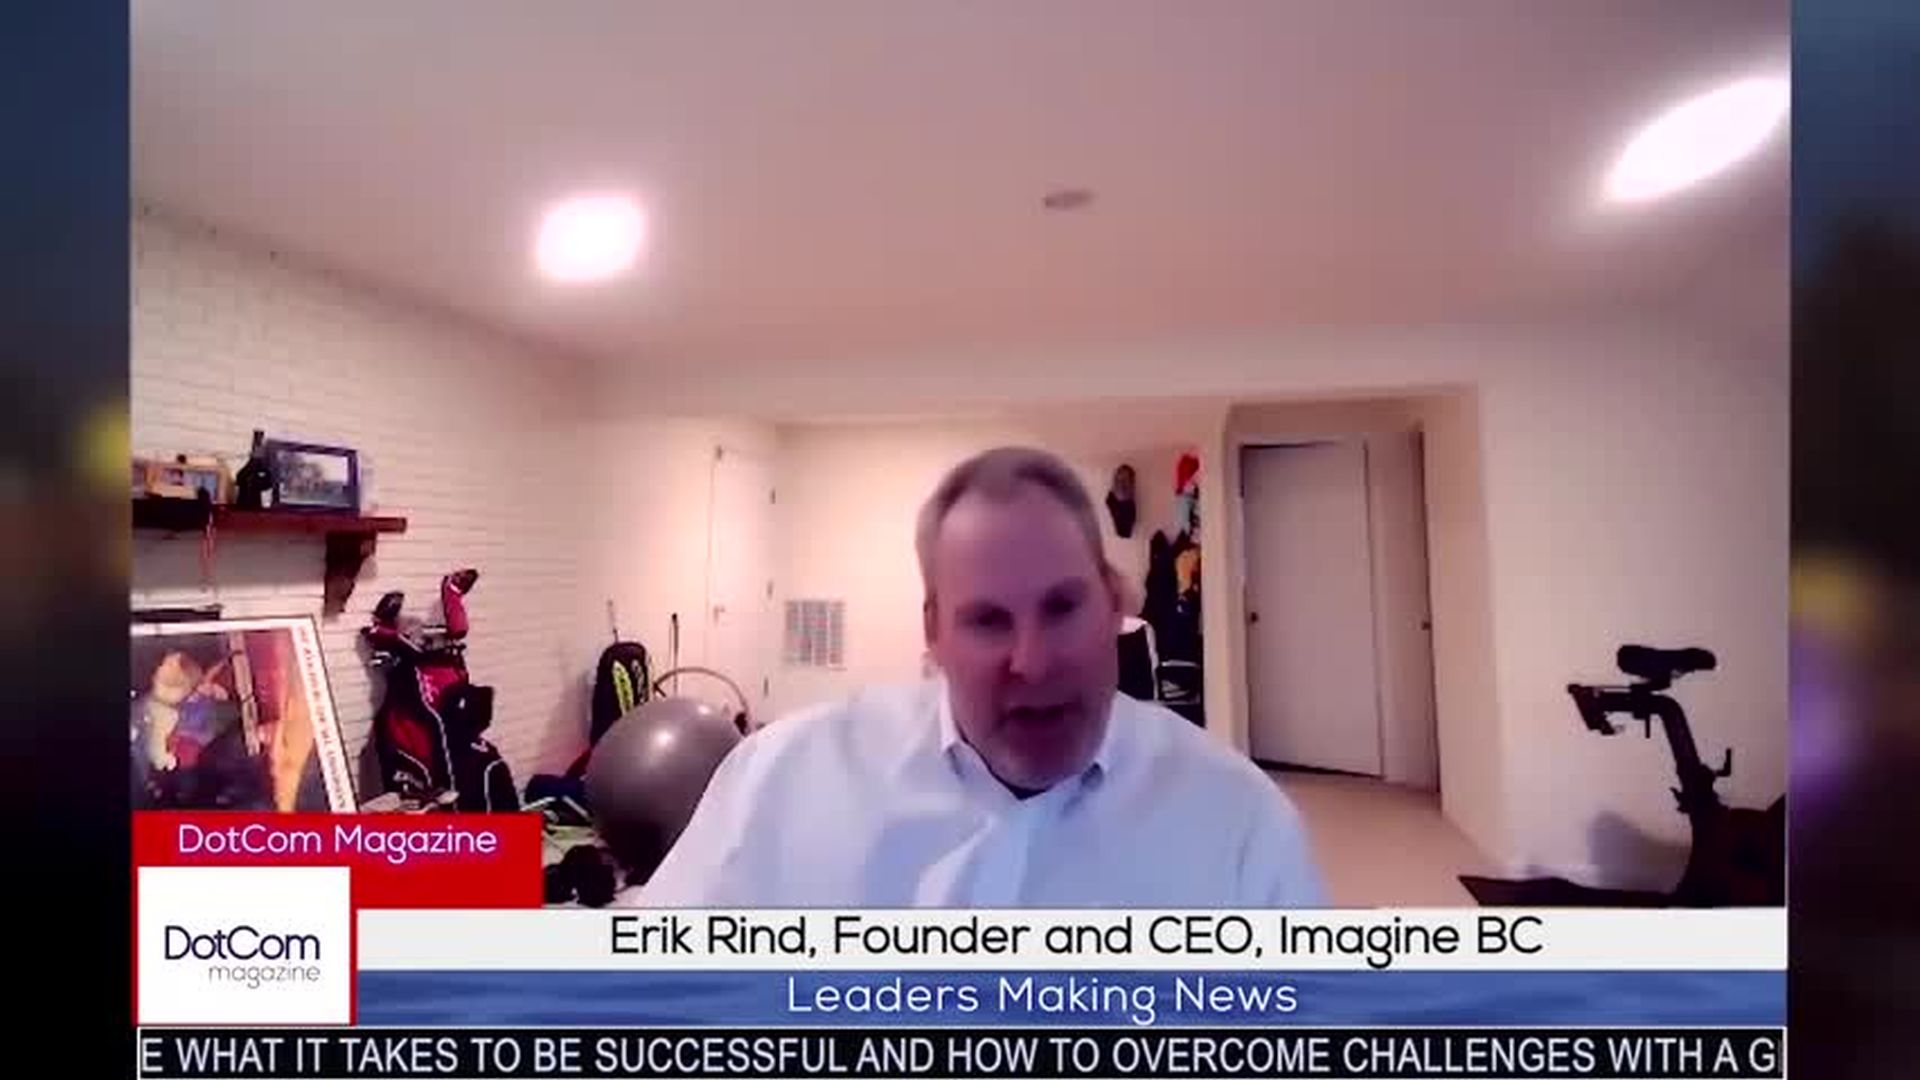 Erik Rind, Founder and CEO, ImagineBC , A DotCom Magazine Exclusive Interview